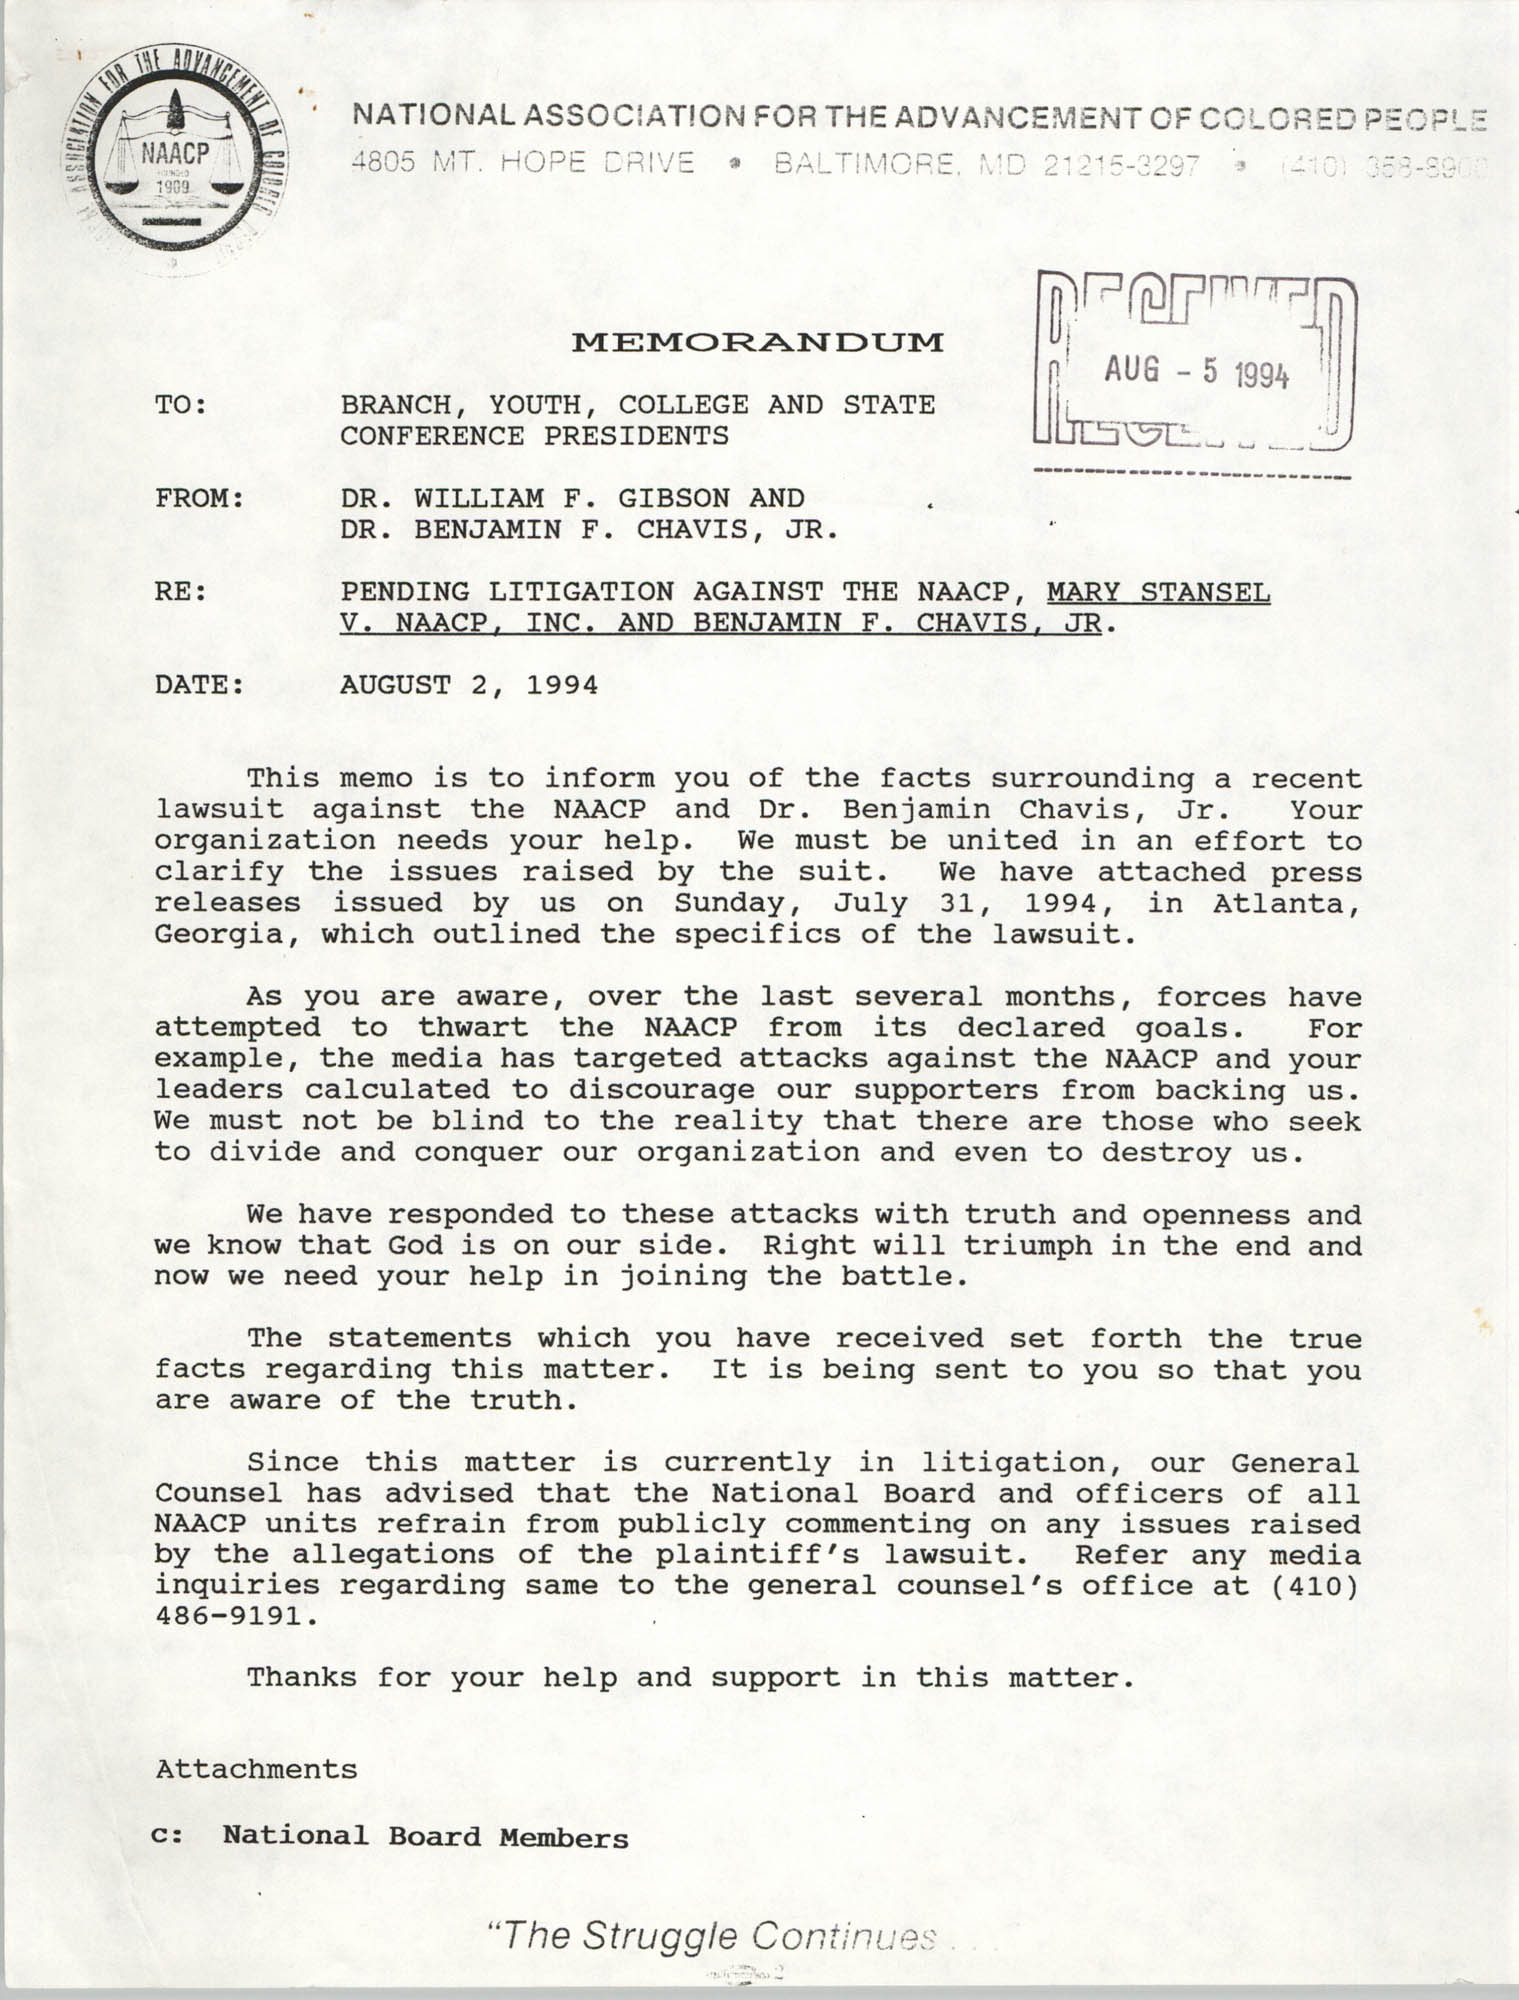 NAACP Memorandum, August 2, 1994